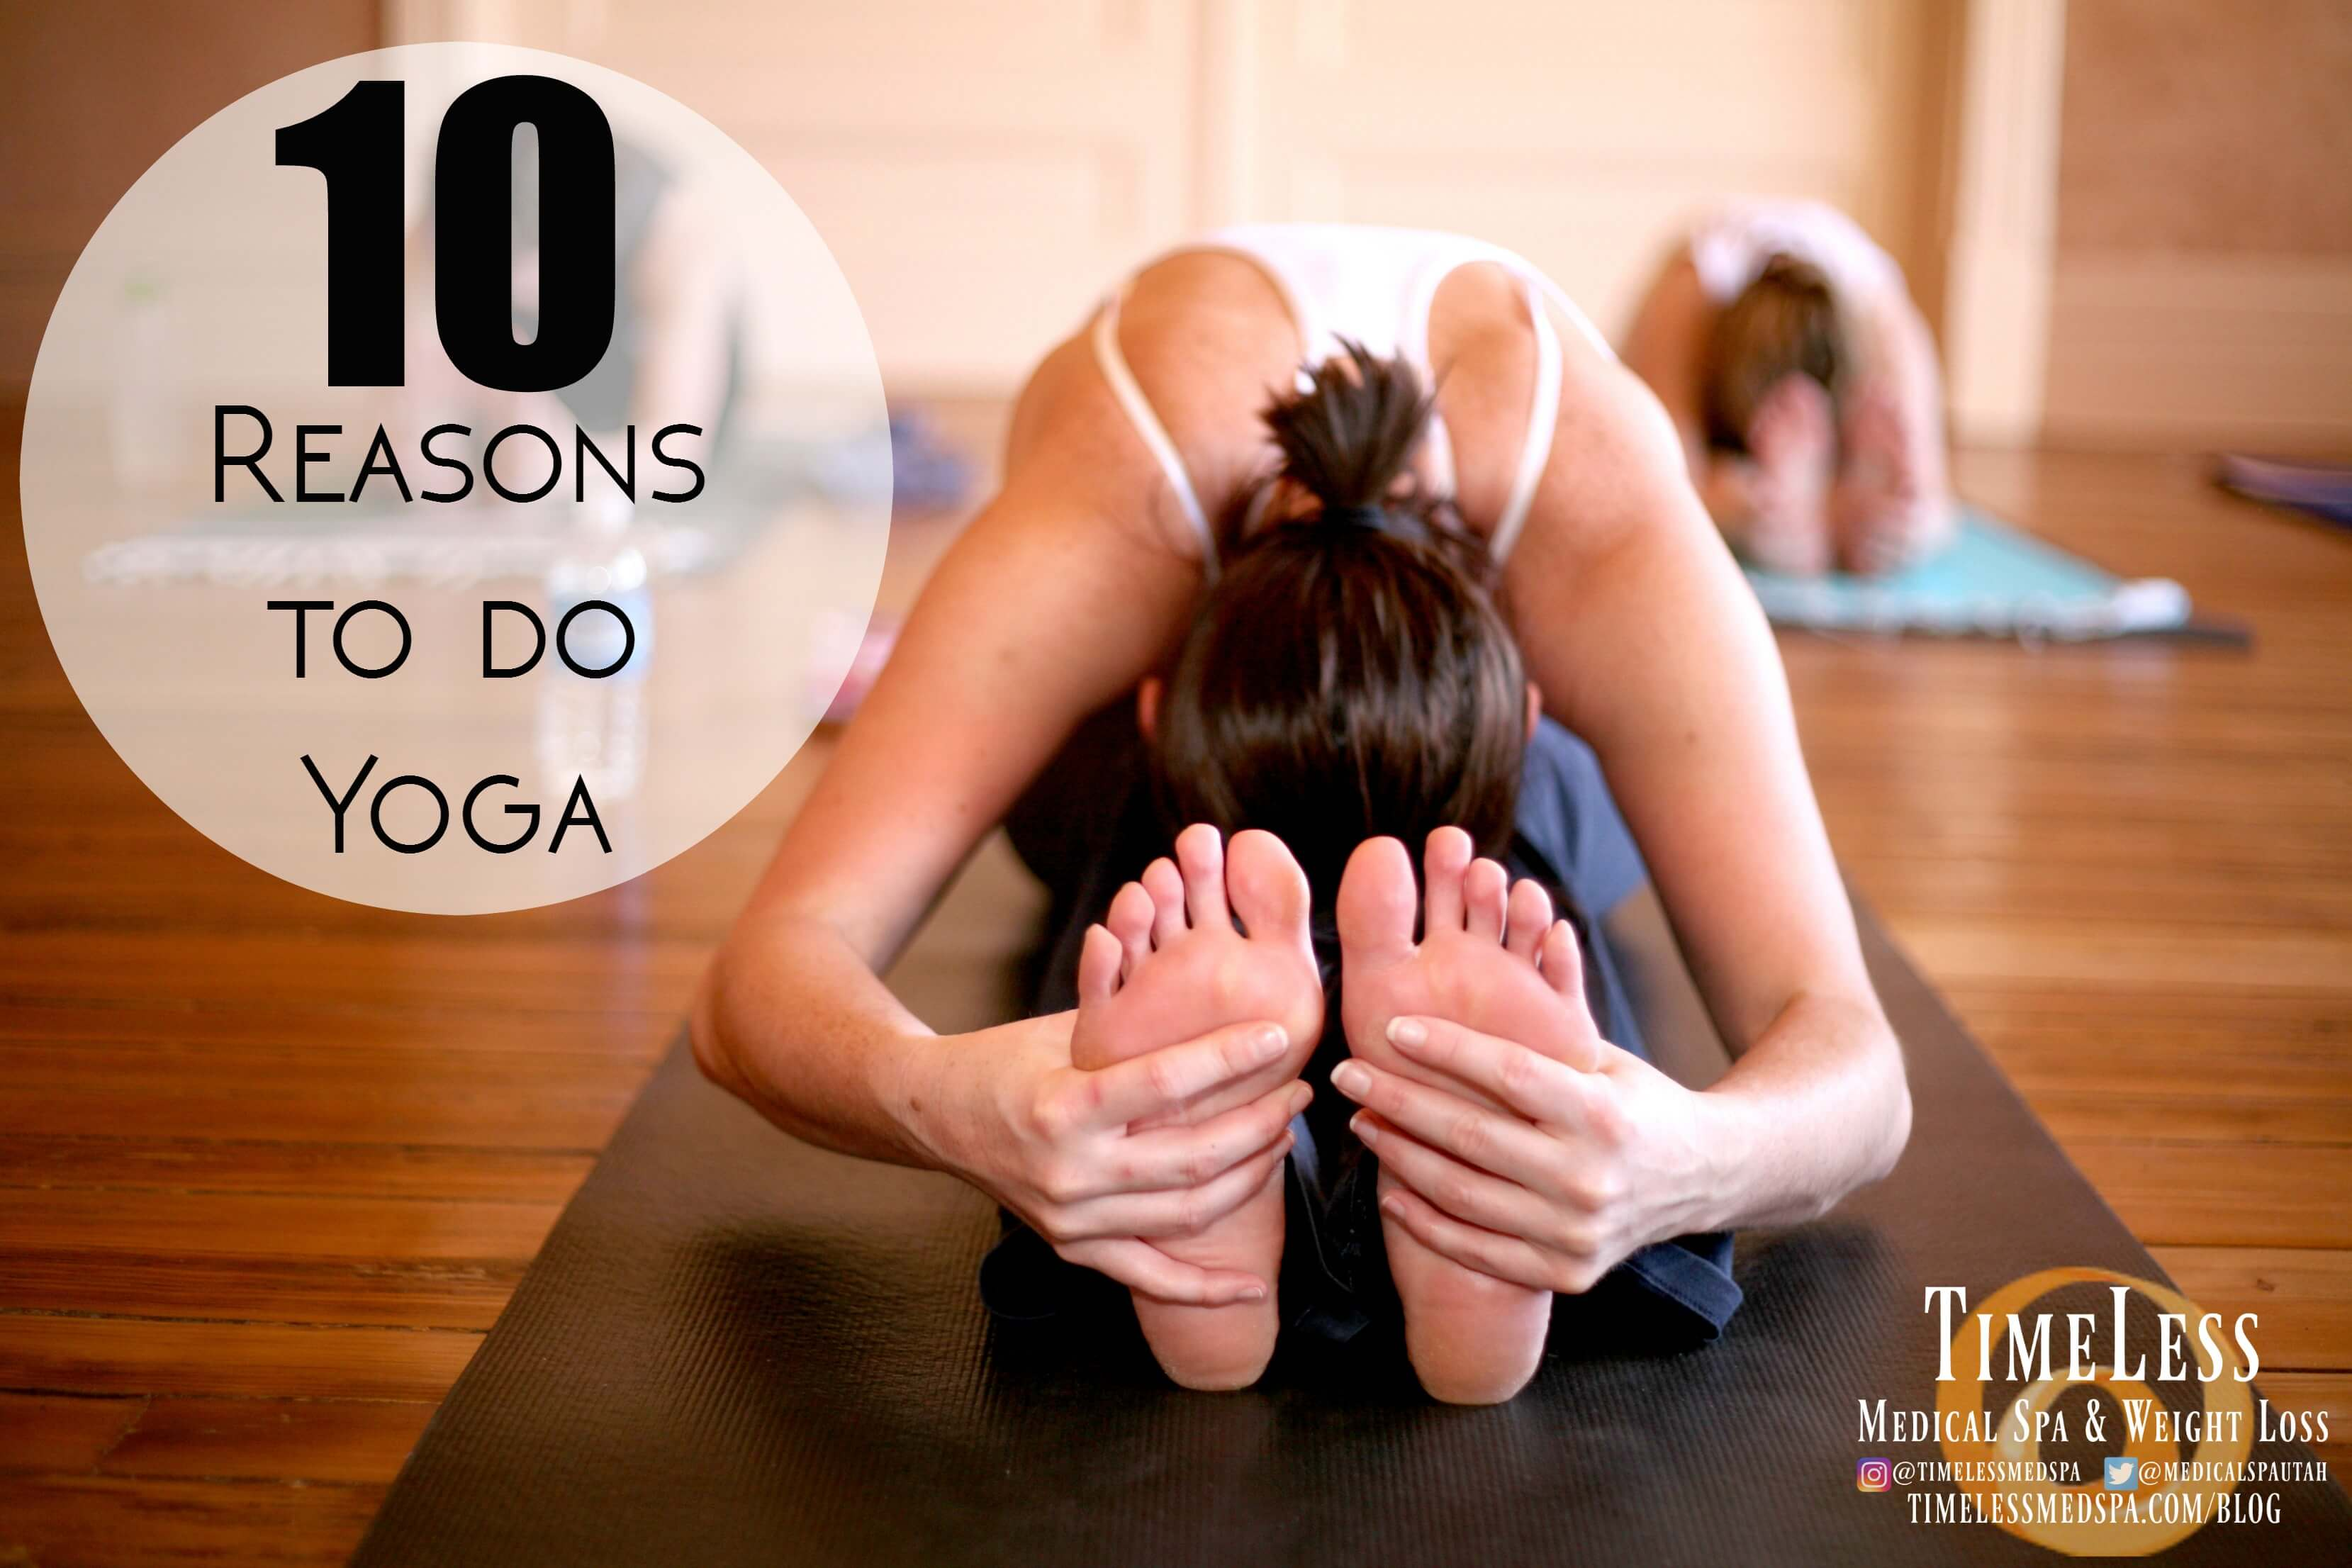 10 reasons to do yoga // TimeLess Yoga Studio in Ogden, Utah // Health blog, benefits of yoga